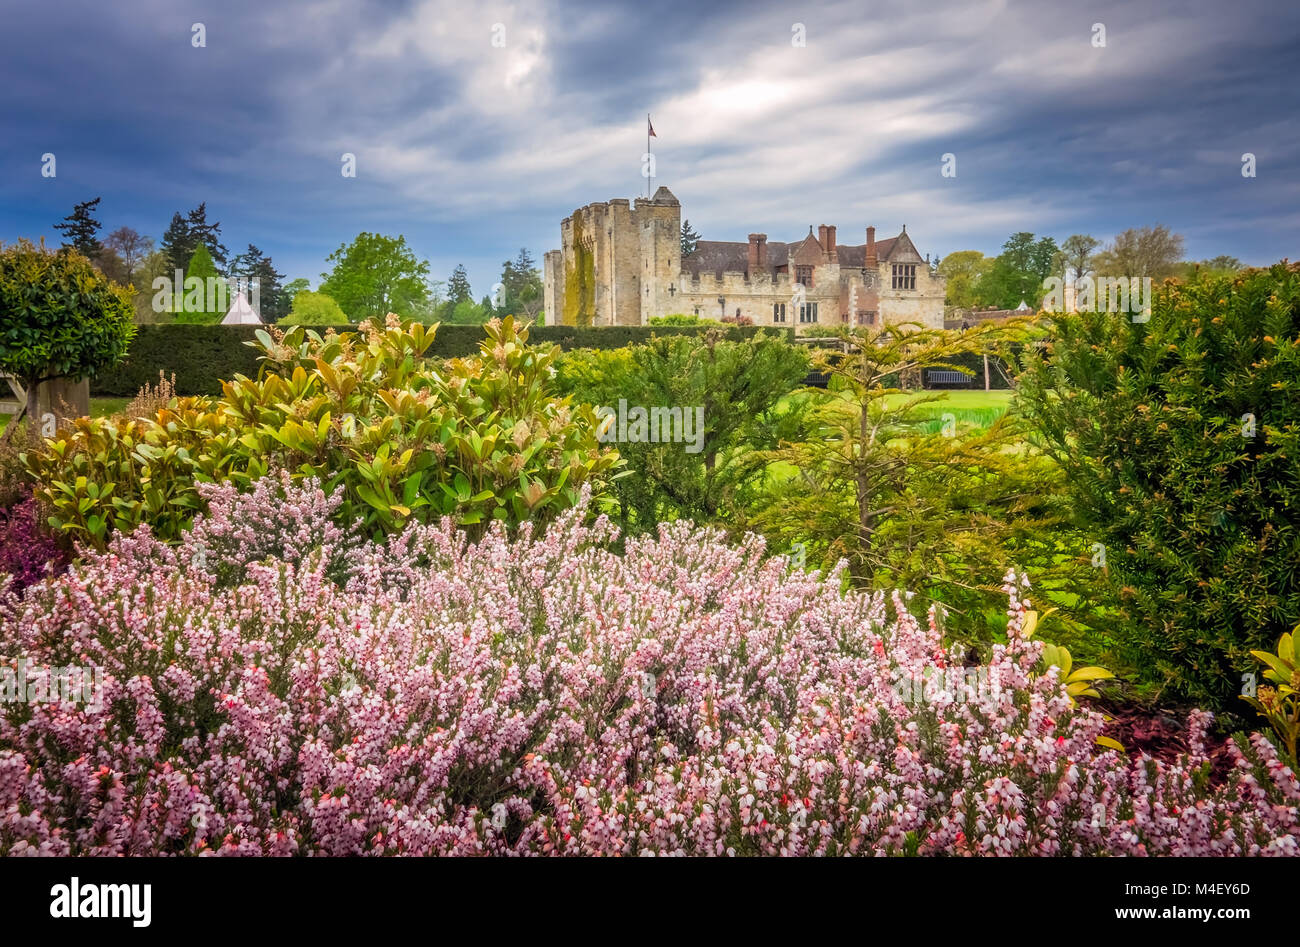 Hever Castle and gardens in Kent - Stock Image